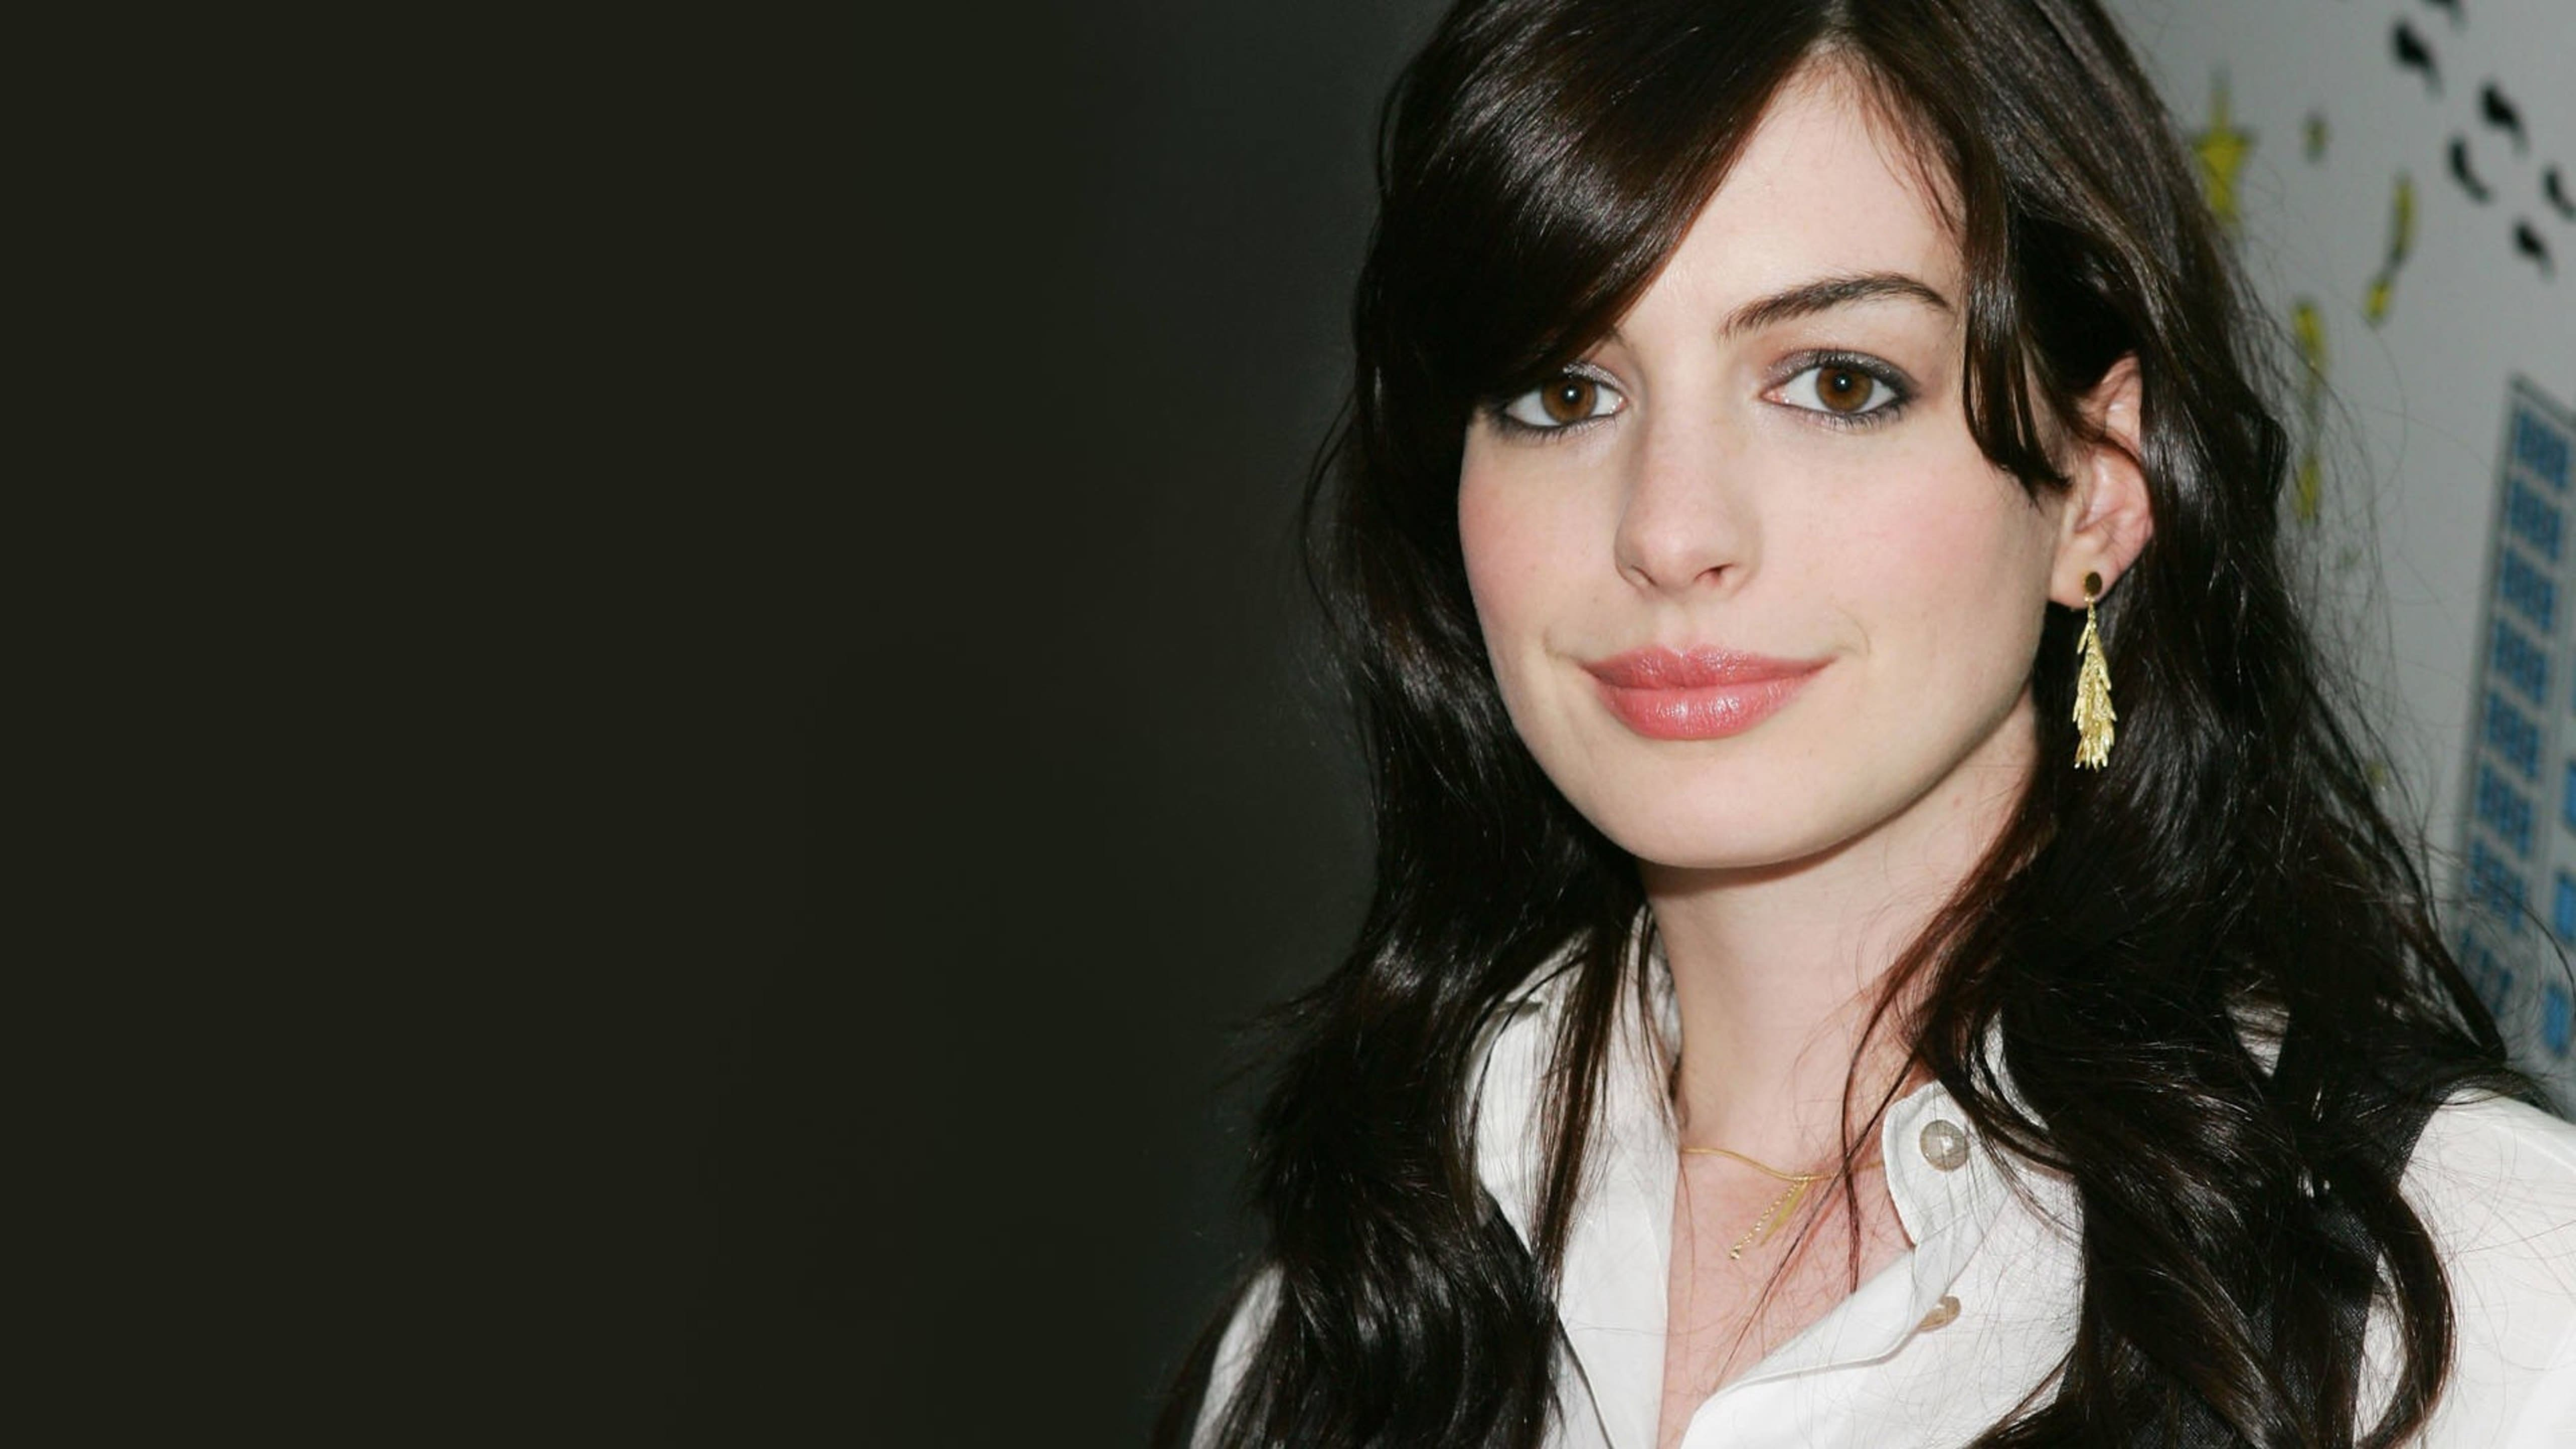 Anne Hathaway full hd wallpapers